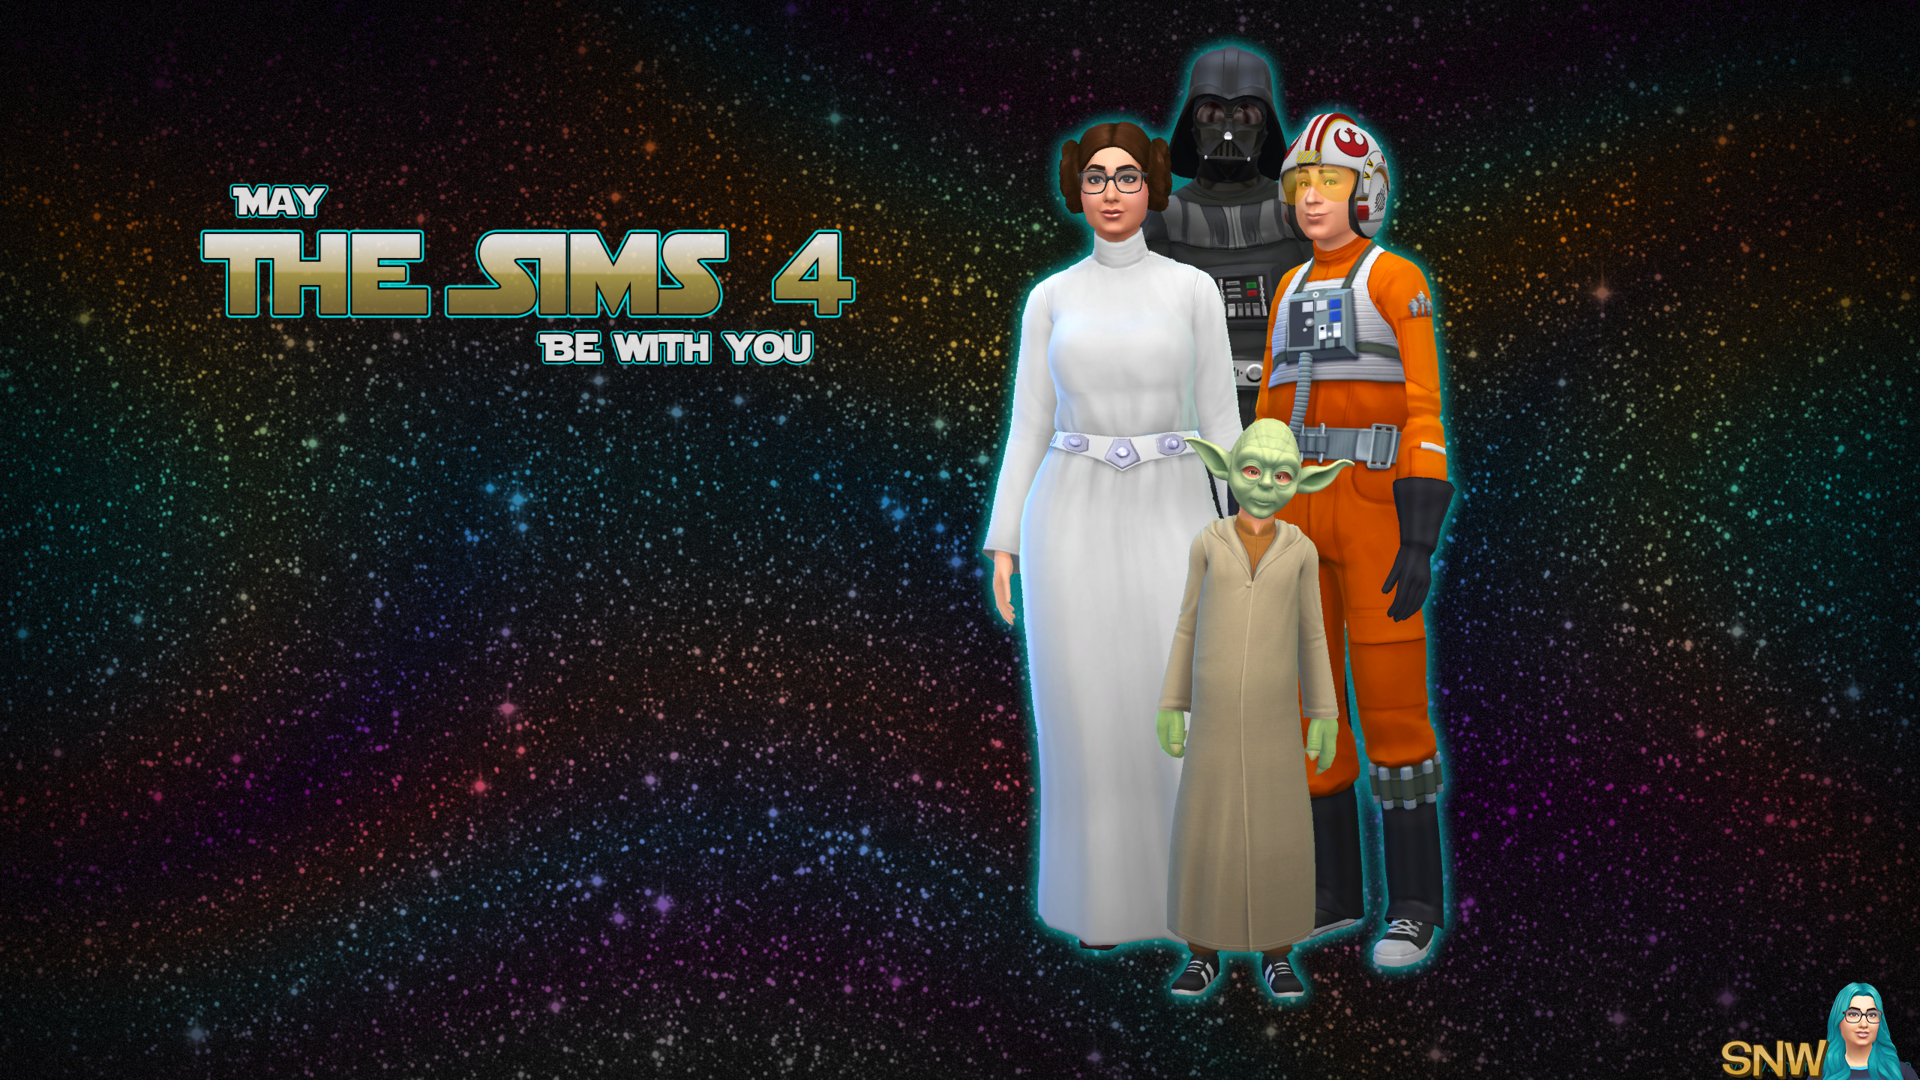 May The Sims 4 Be With You Wallpapers Snw Simsnetwork Com